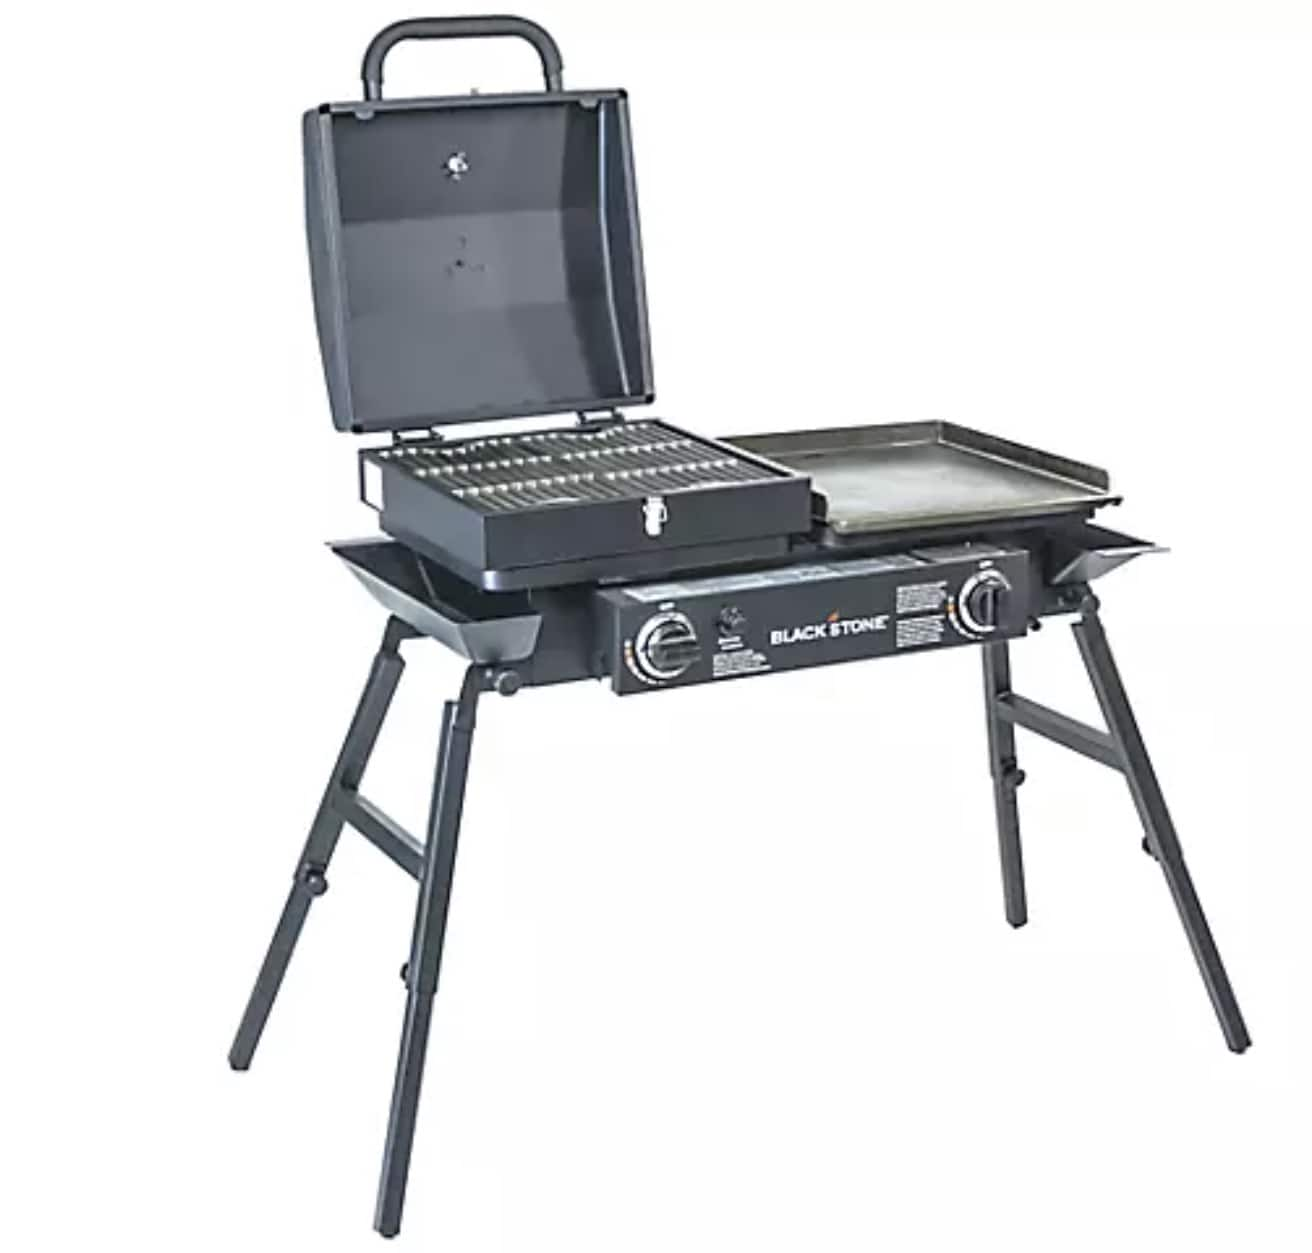 Blackstone Gas Tailgater Combo Grill with bonus cover -Model 1827($199.99 + Free Shipping)